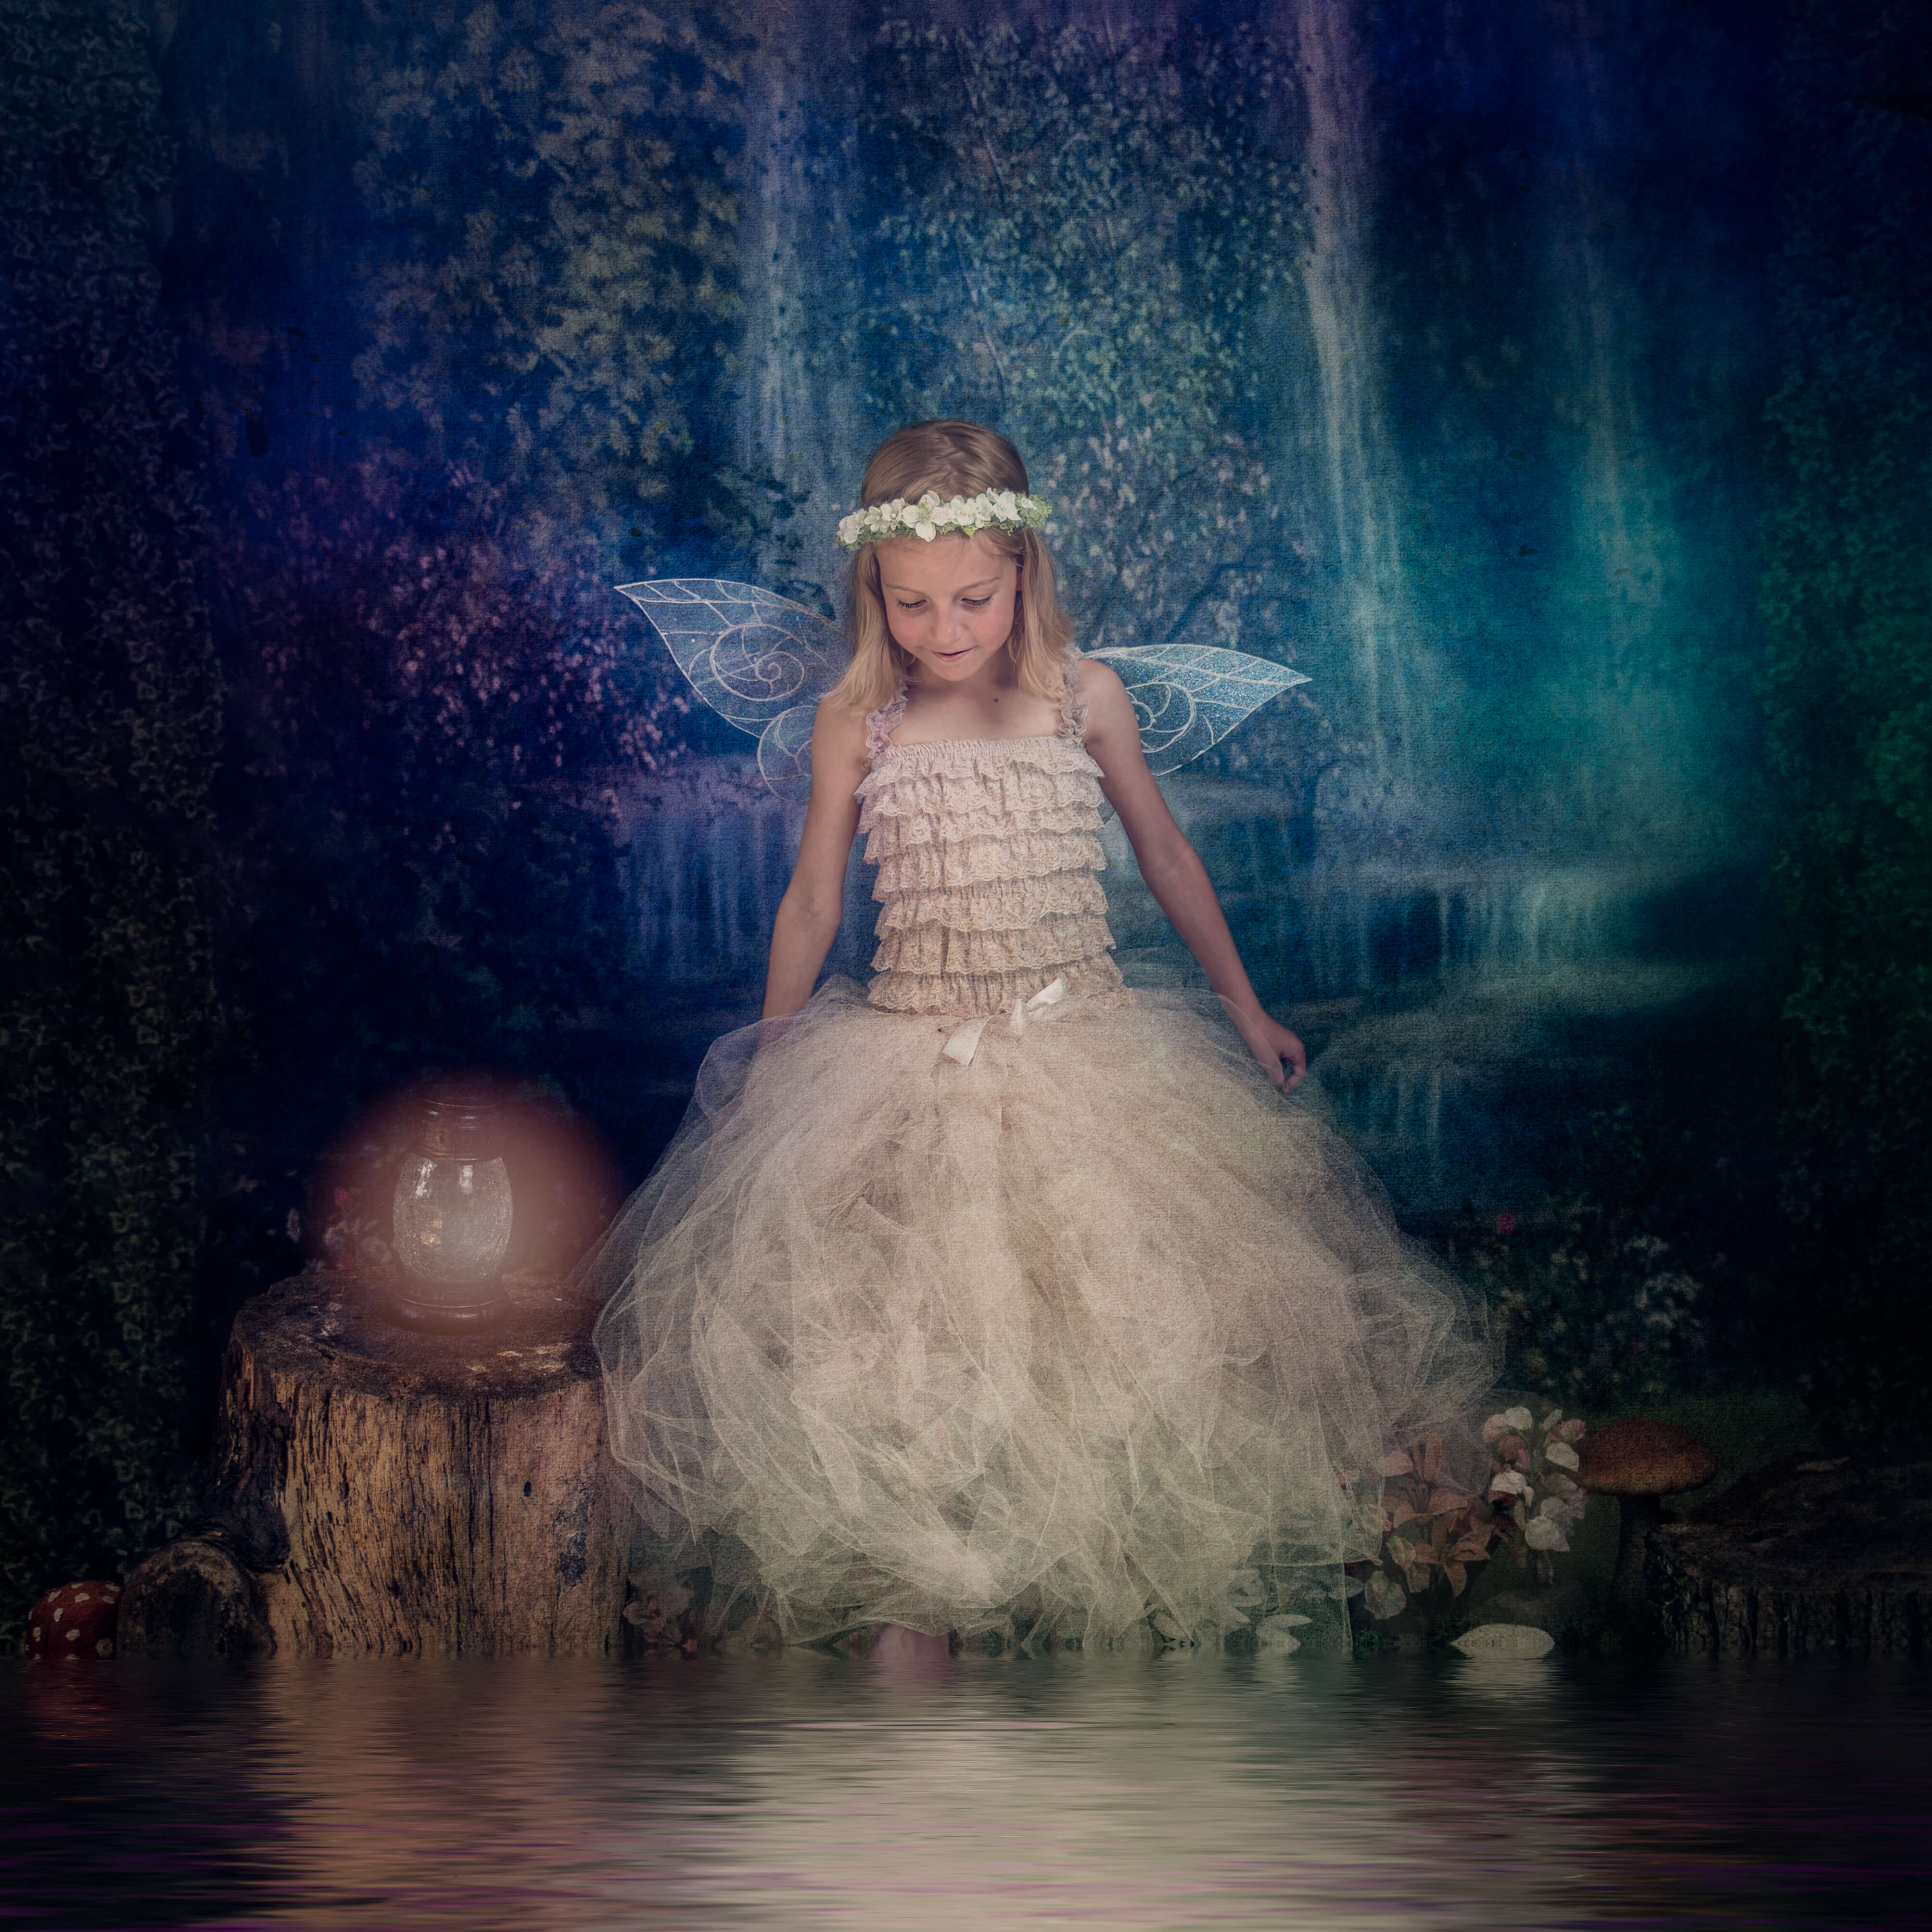 Fairies and Elves Gallery 3